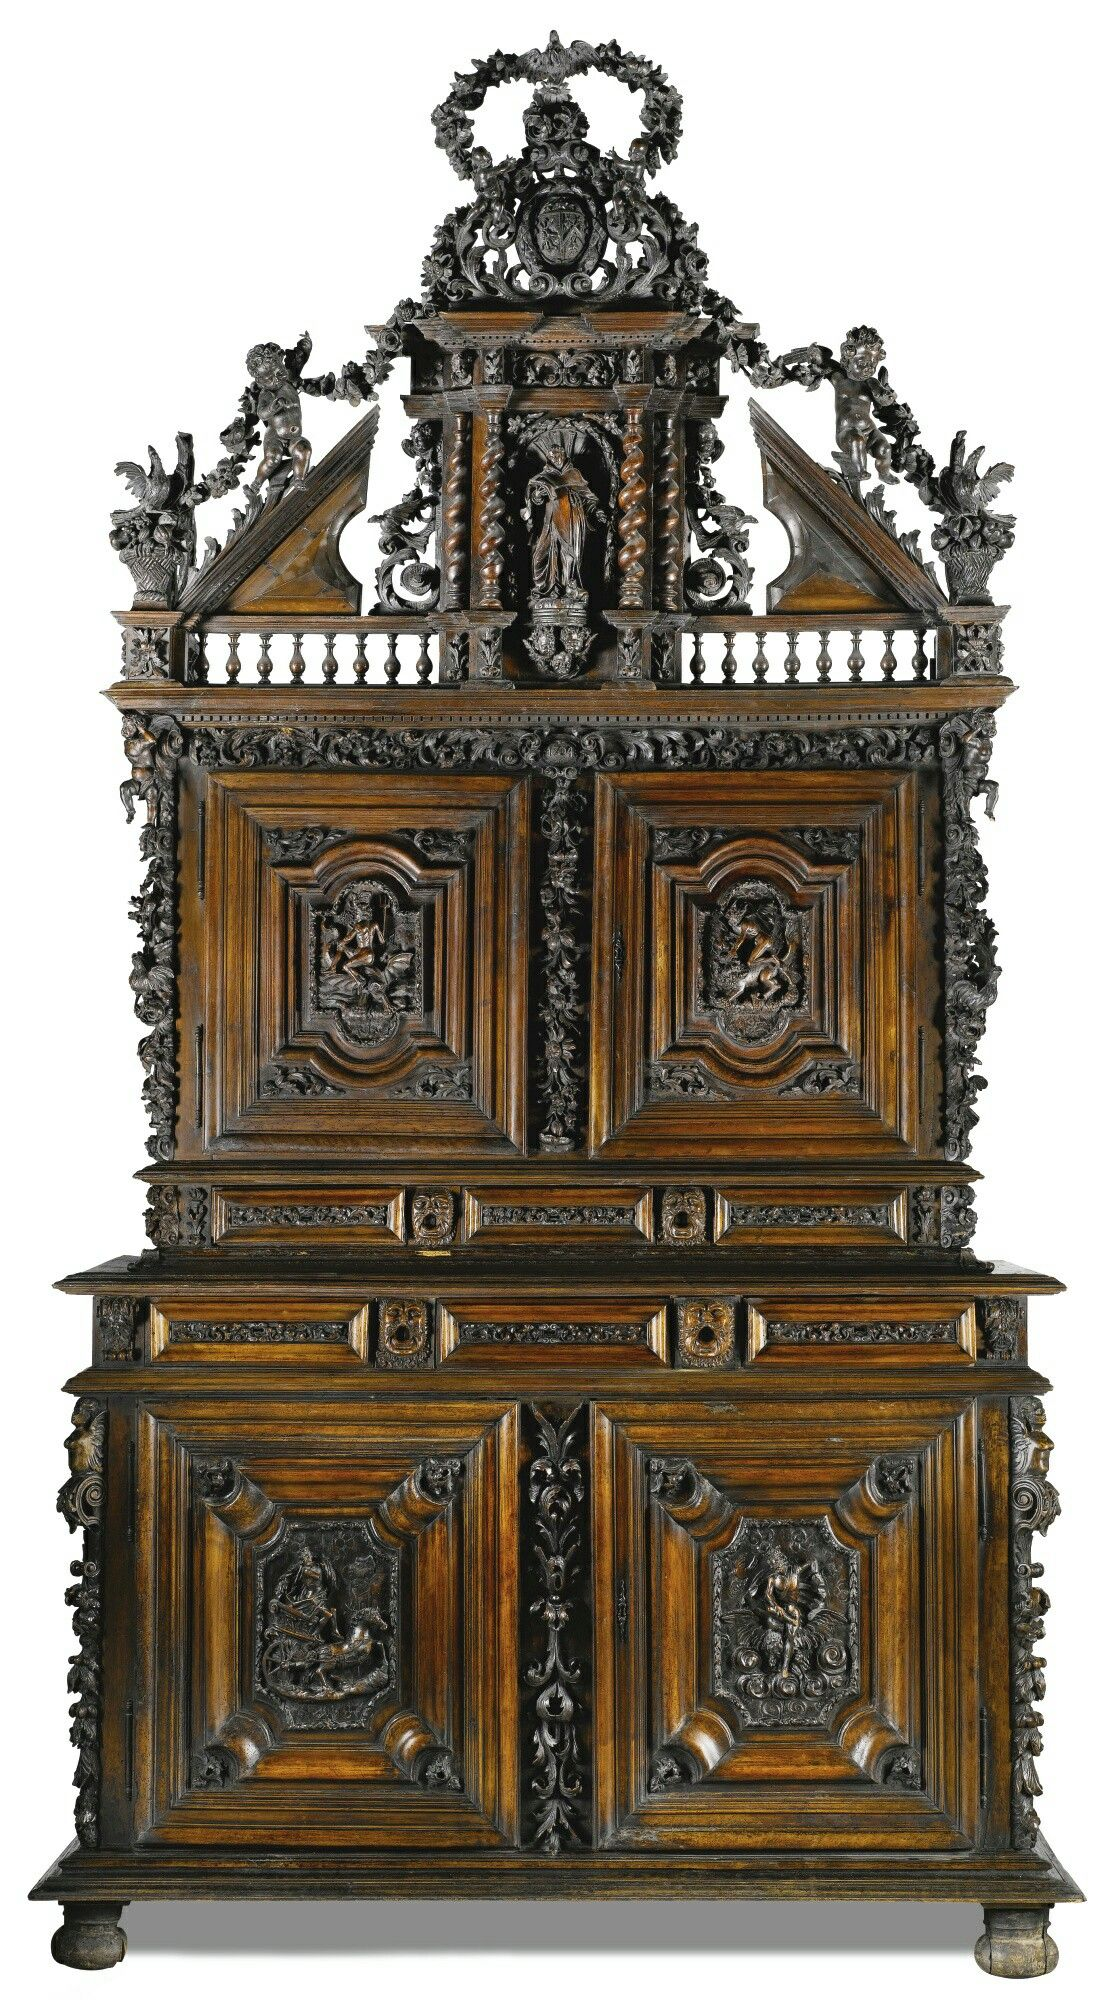 Muebles Italianos Clasicos An Italian Carved Walnut Cabinet Piedmontese Dated 1704